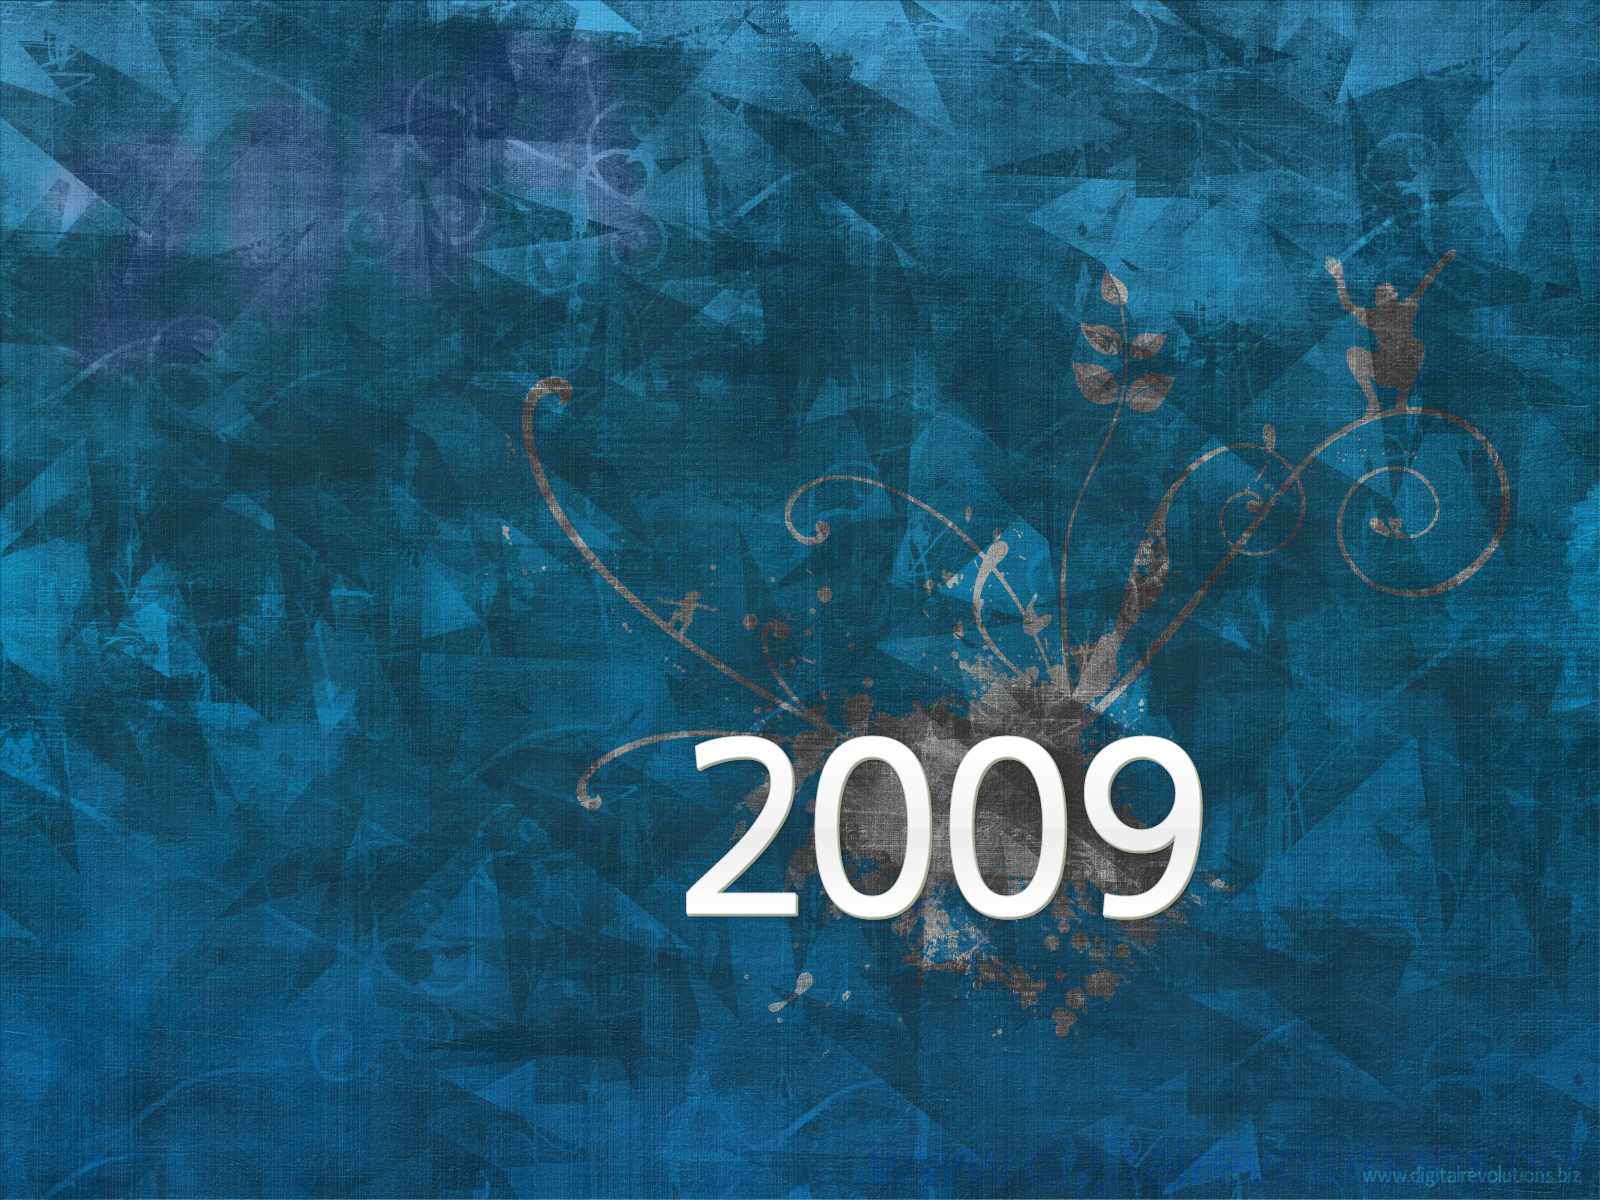 Celebrate the Digital Revolutions way with our 2008-2009 New Years Wallpaper